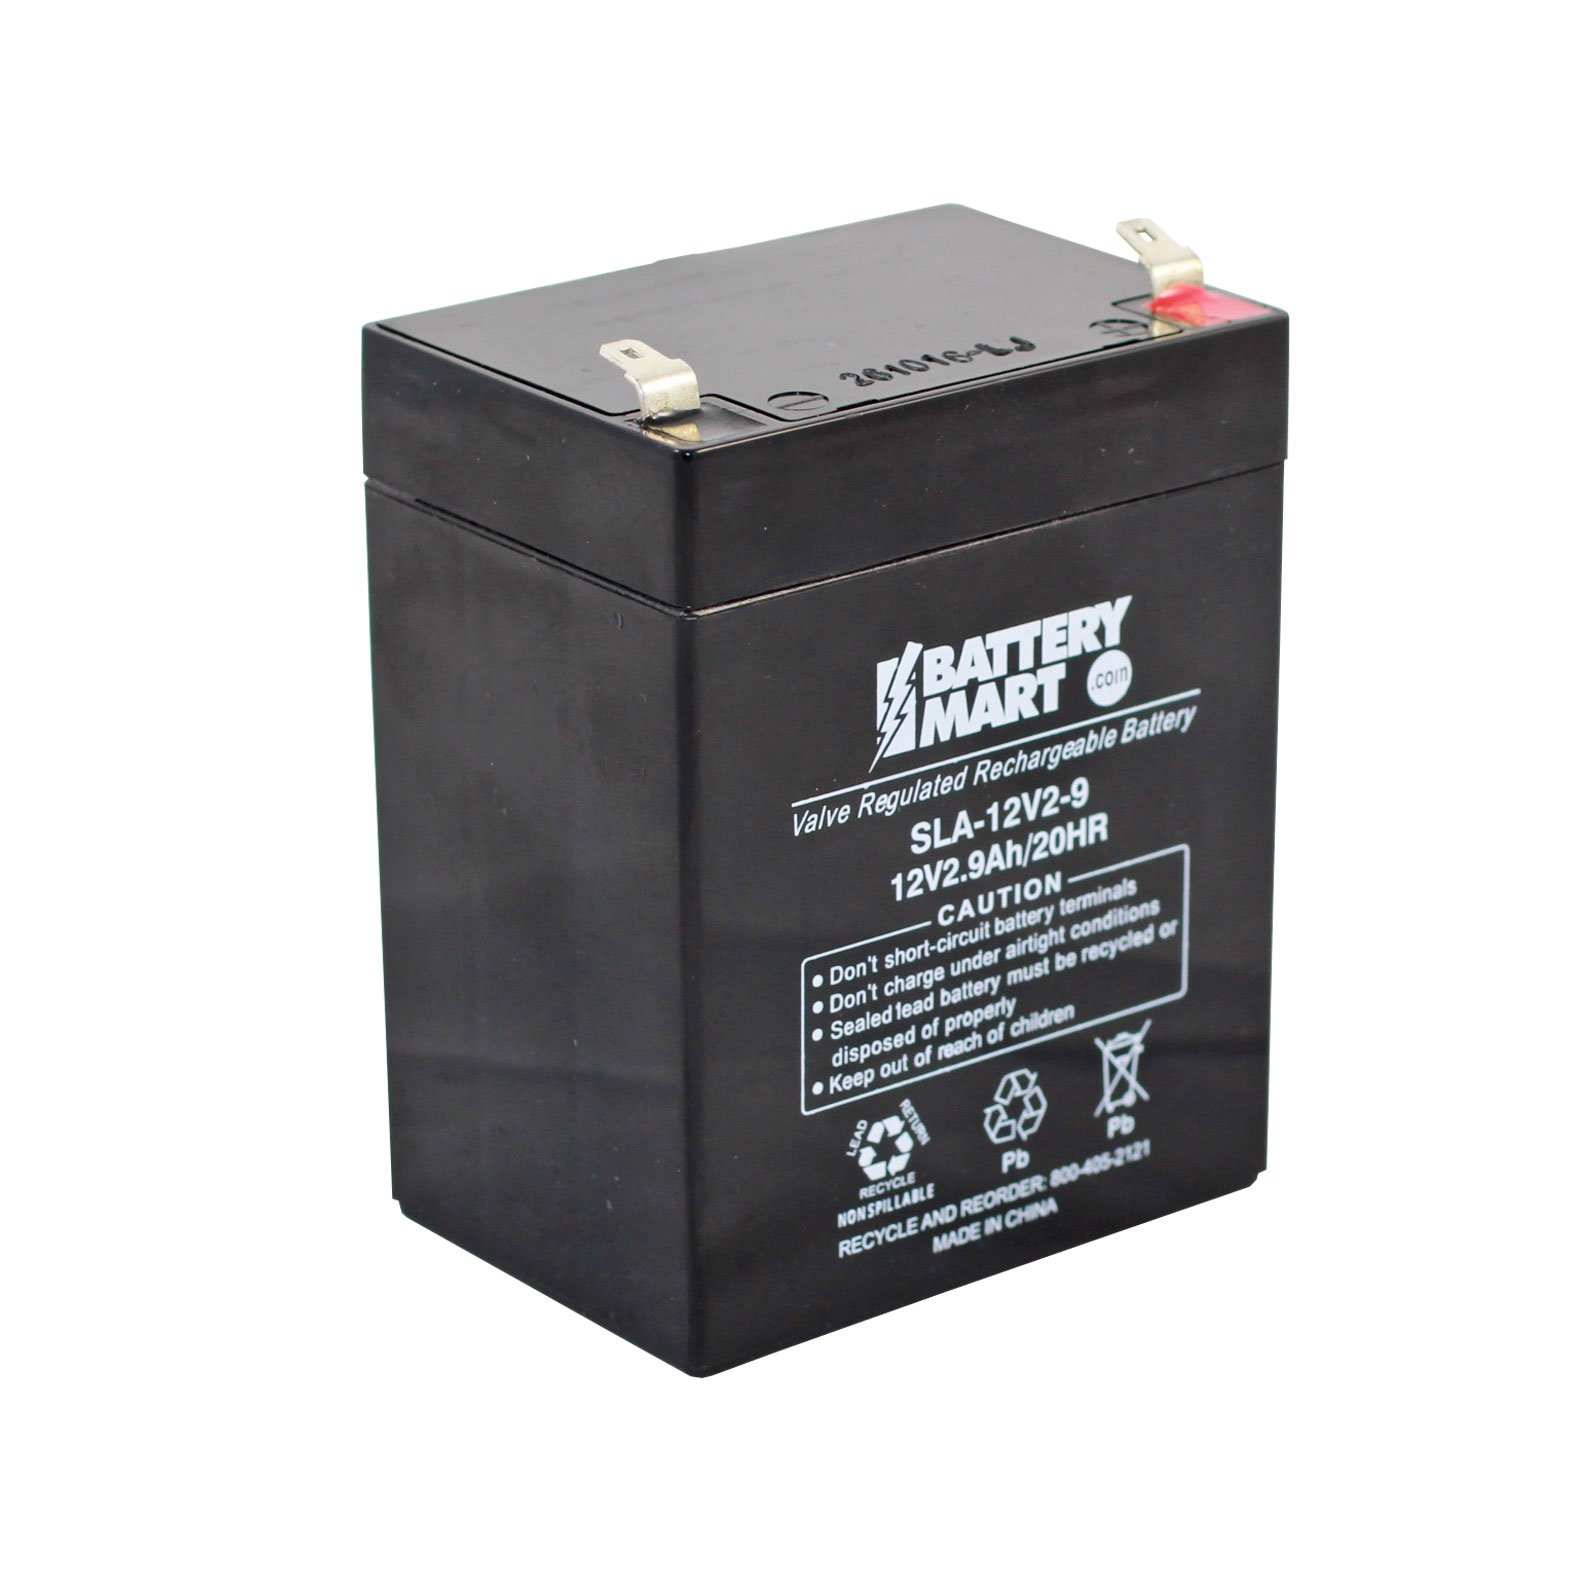 12 volt 2 9 ah sealed lead acid rechargeable battery f1. Black Bedroom Furniture Sets. Home Design Ideas